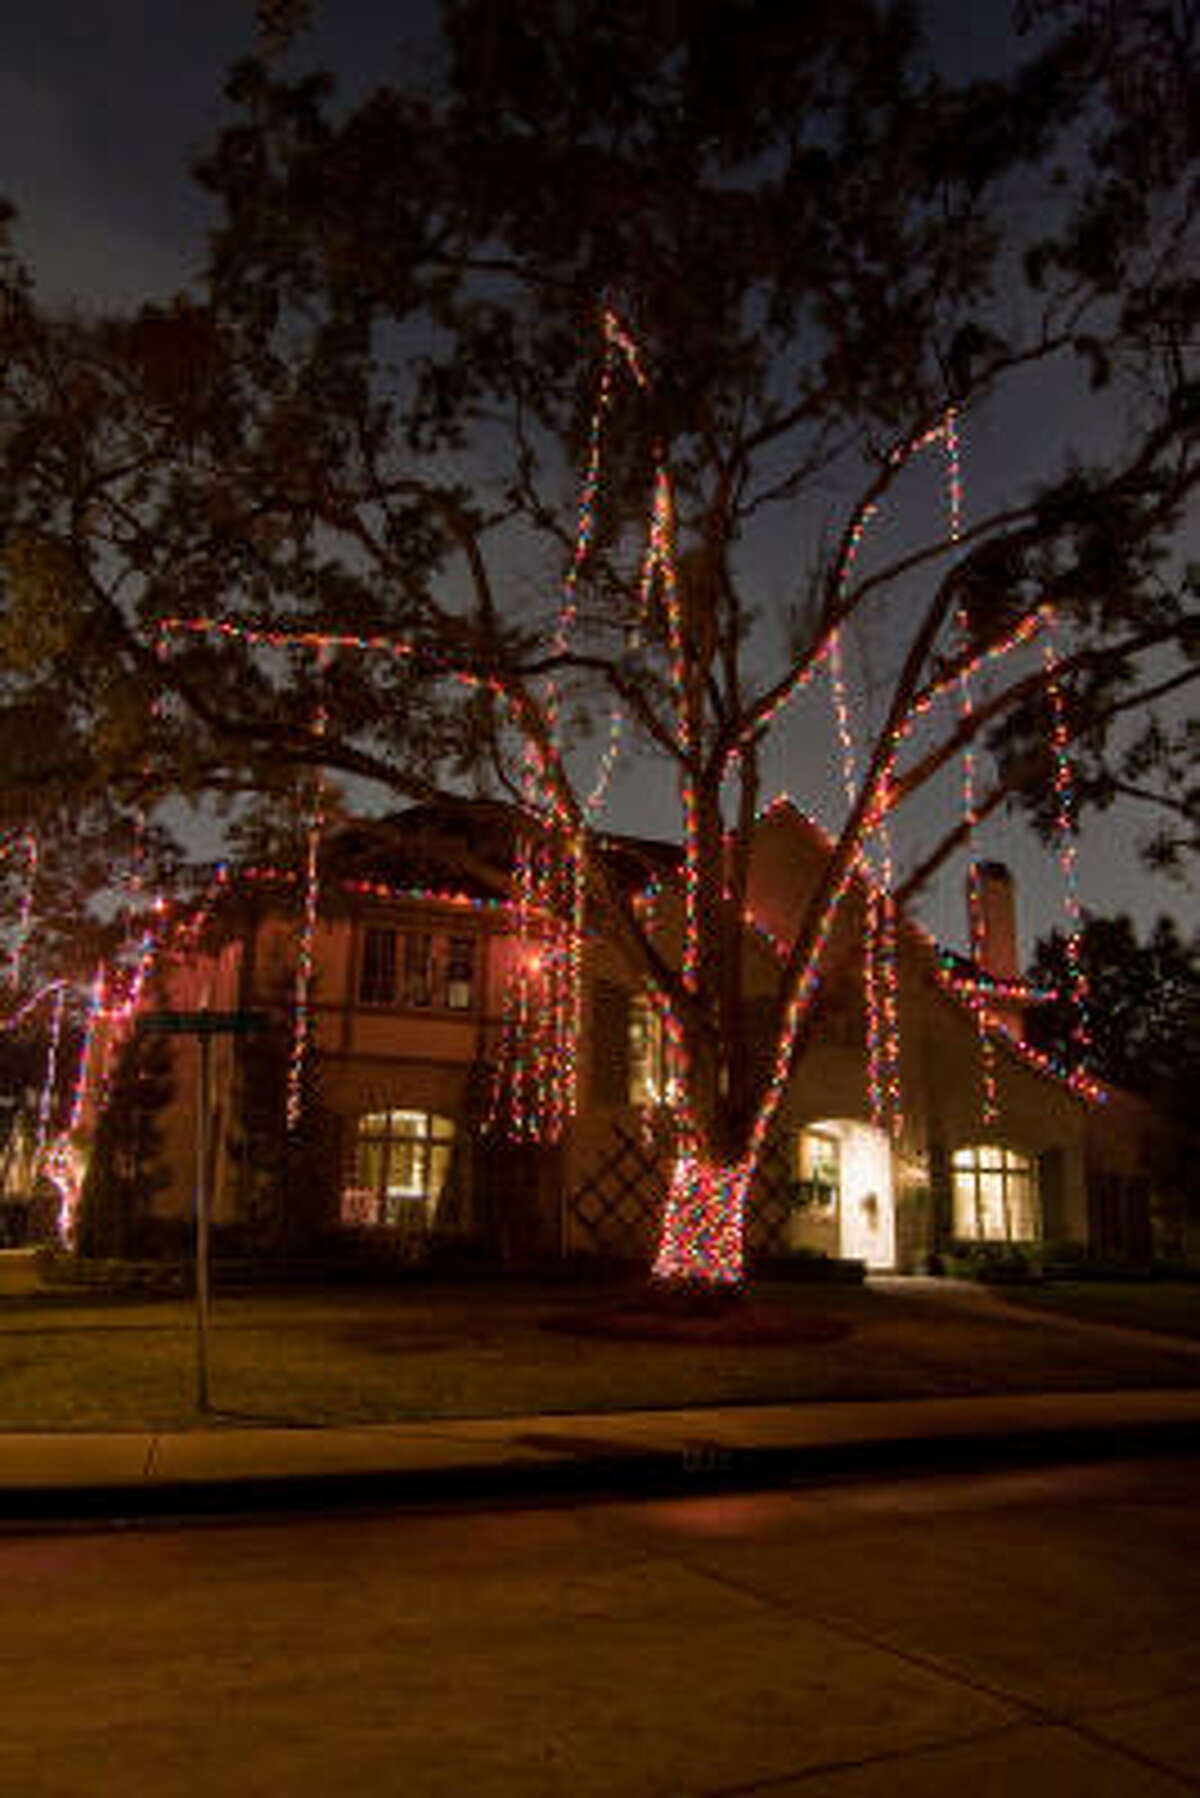 FULL OF COLOR: Several residents in the Briar Grove area have adopted the idea of decorating the large trees in the front yard with a multitude of lights.